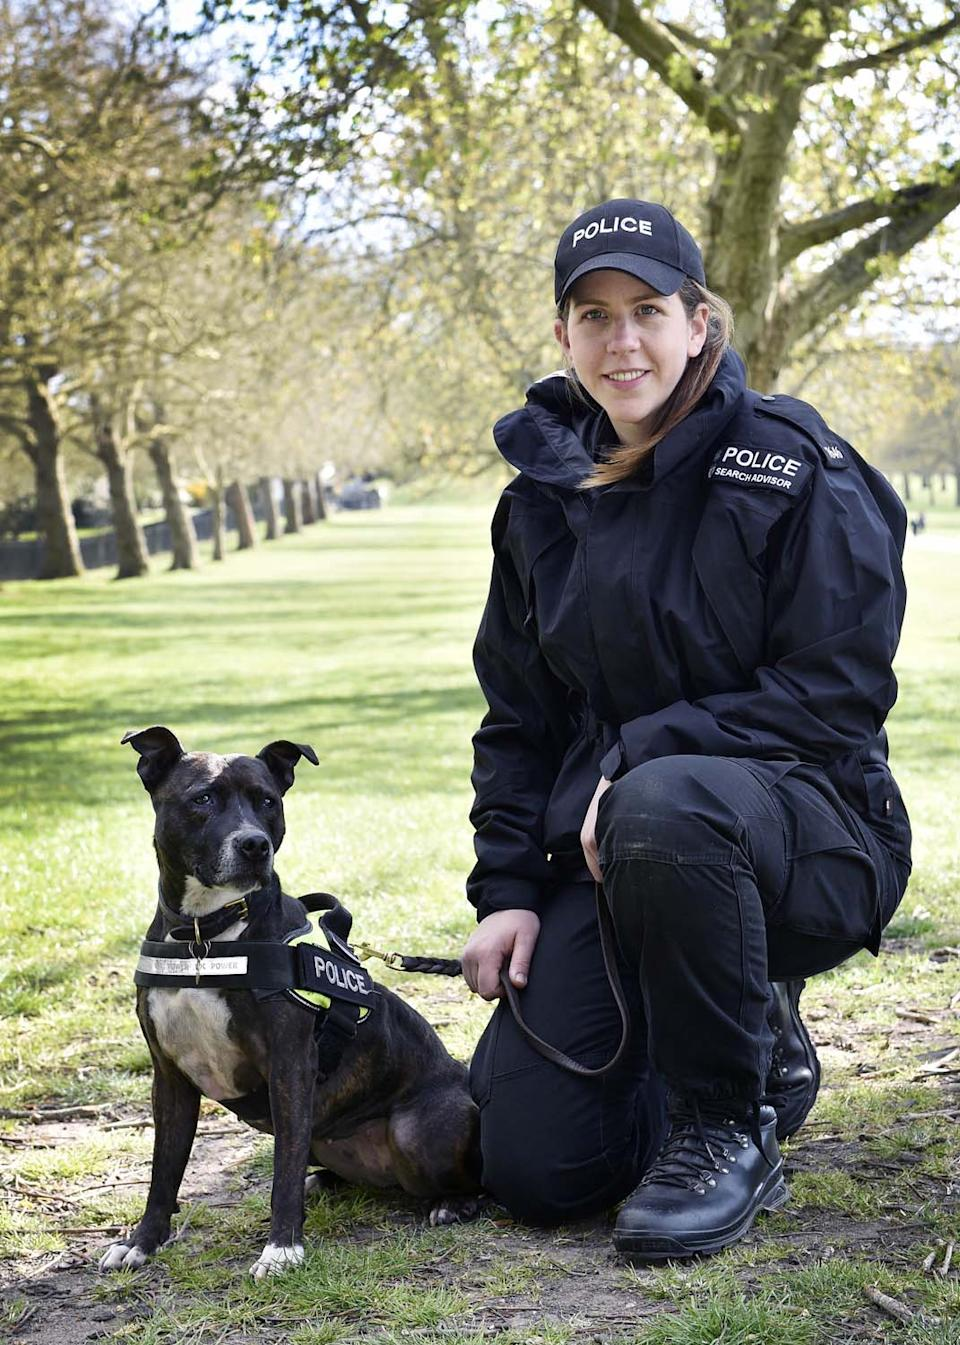 Undated handout photo issued by Thames Valley Police of police dog handler PC Camilla Carter and five-year-old Roxy, an unwanted Staffie which was rescued by RSPCA officers after being abandoned in 2017 and which has now become the only Staffie working as an explosives search dog in the UK helping to protect the royal family and the only type of her breed working in the Hampshire and Thames Valley police dog unit. Issue date: Tuesday June 1, 2021.